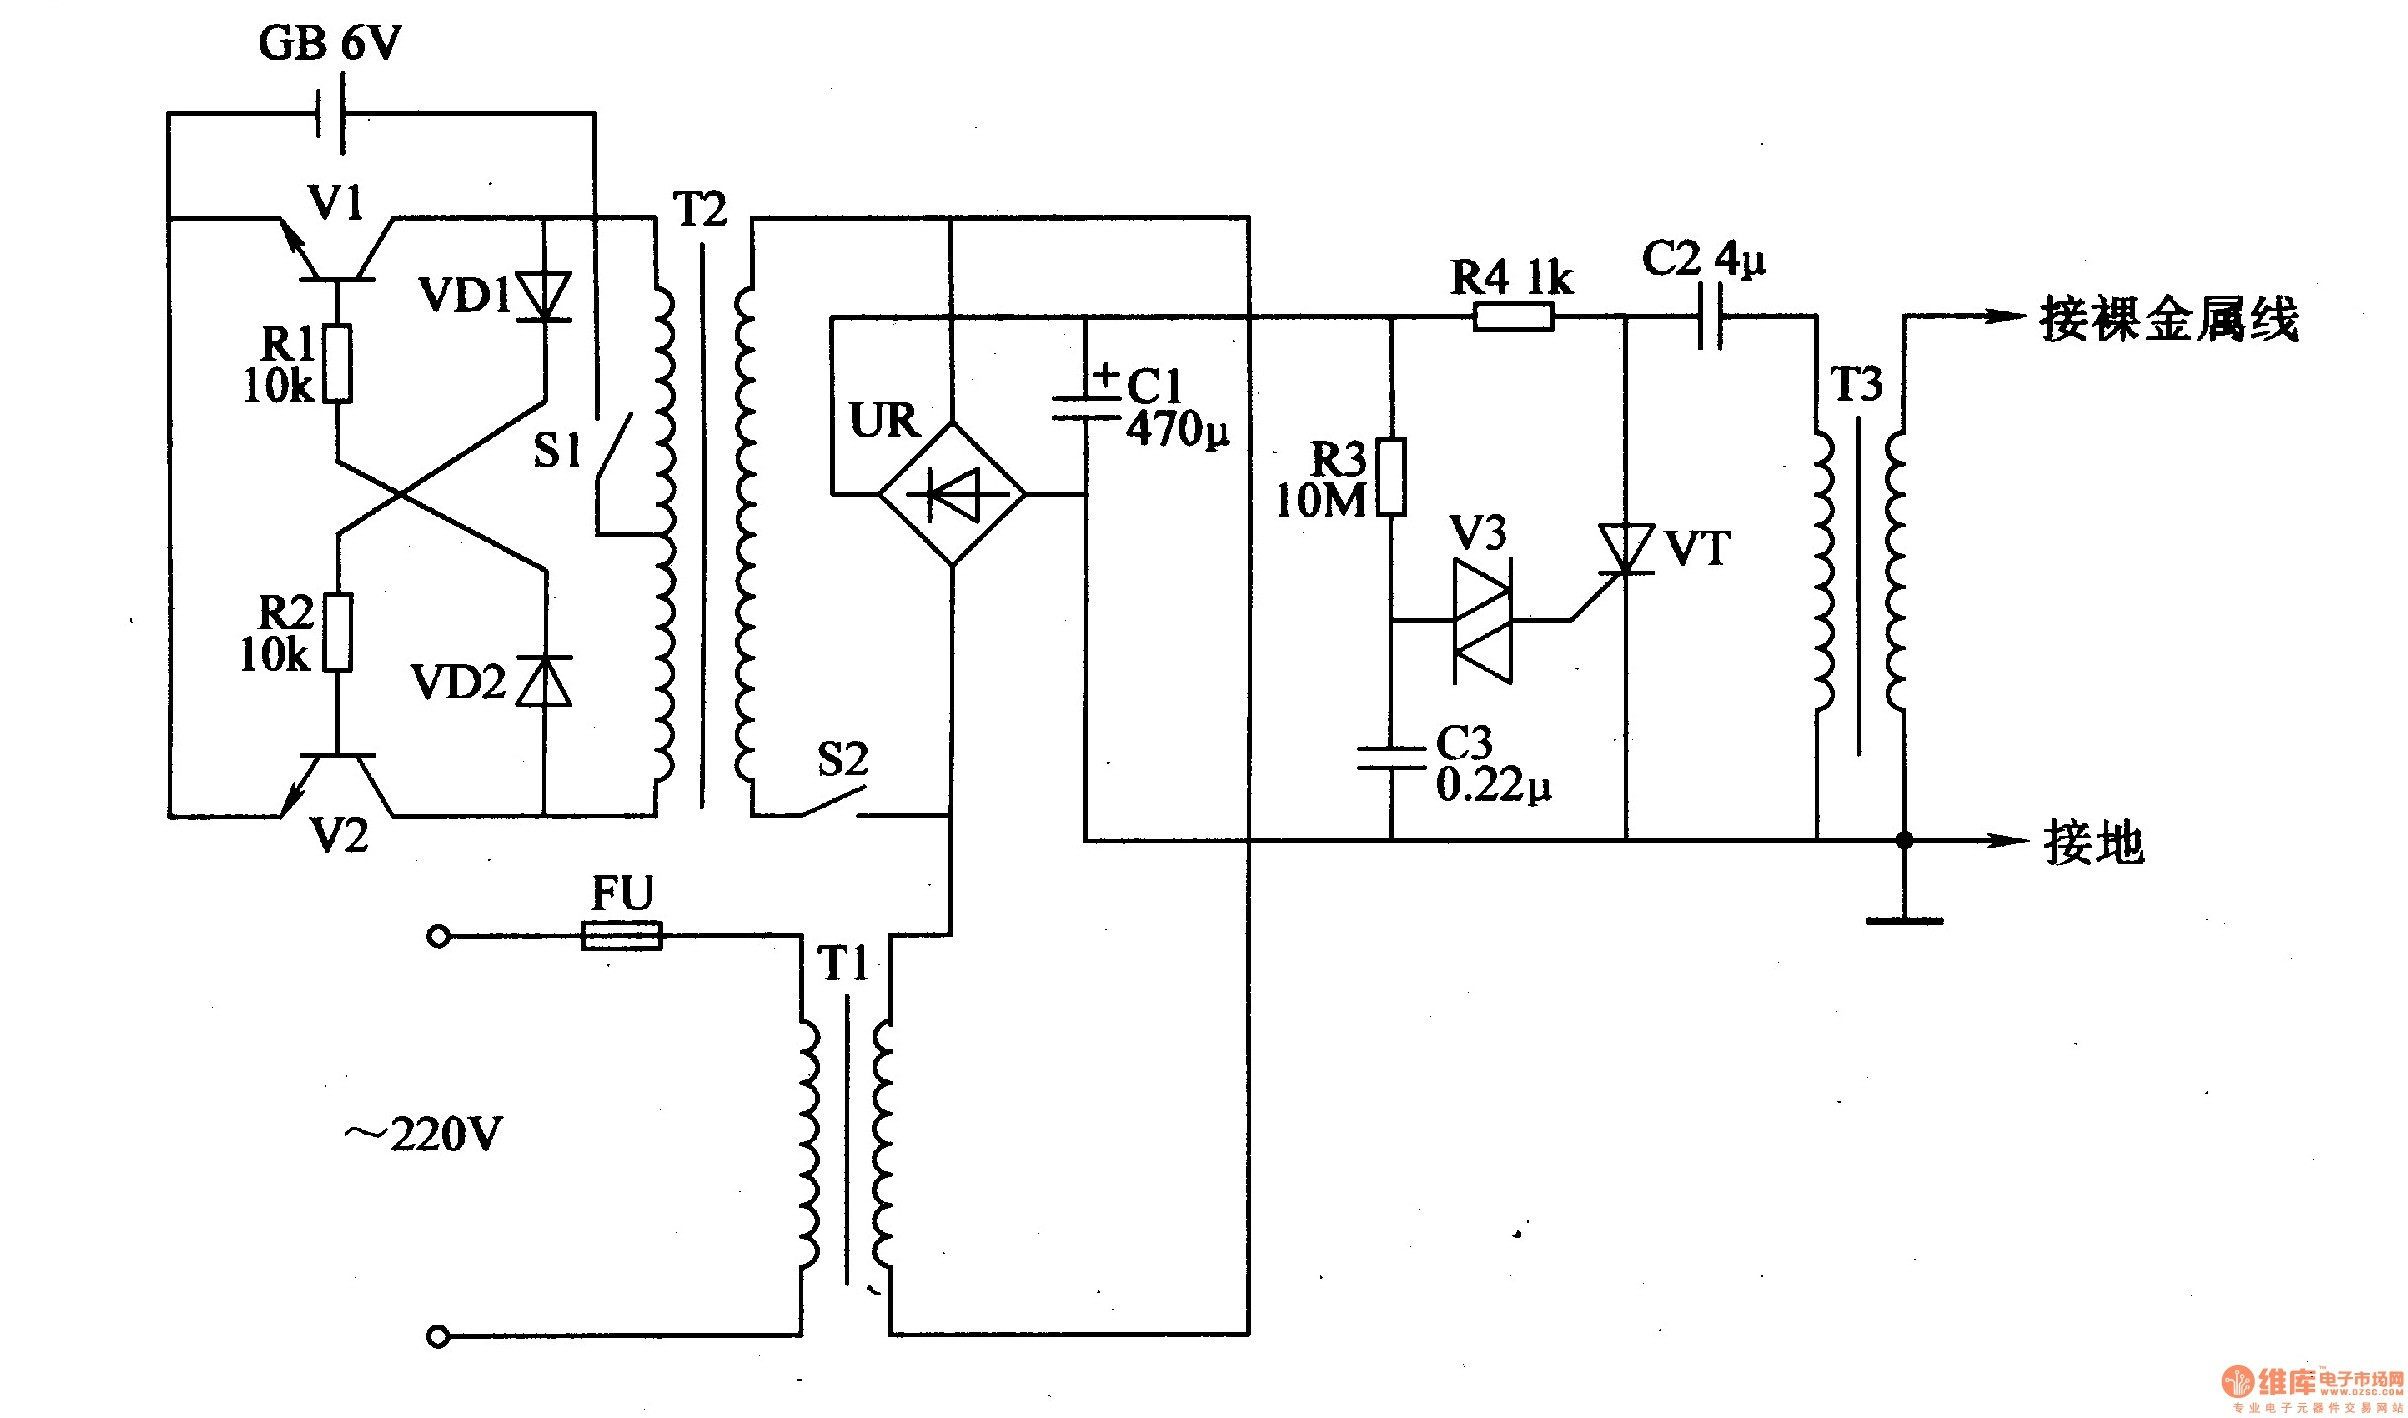 Dog Fence Wiring Diagram Get Free Image About Wiring Diagram - Invisible Fence Wiring Diagram